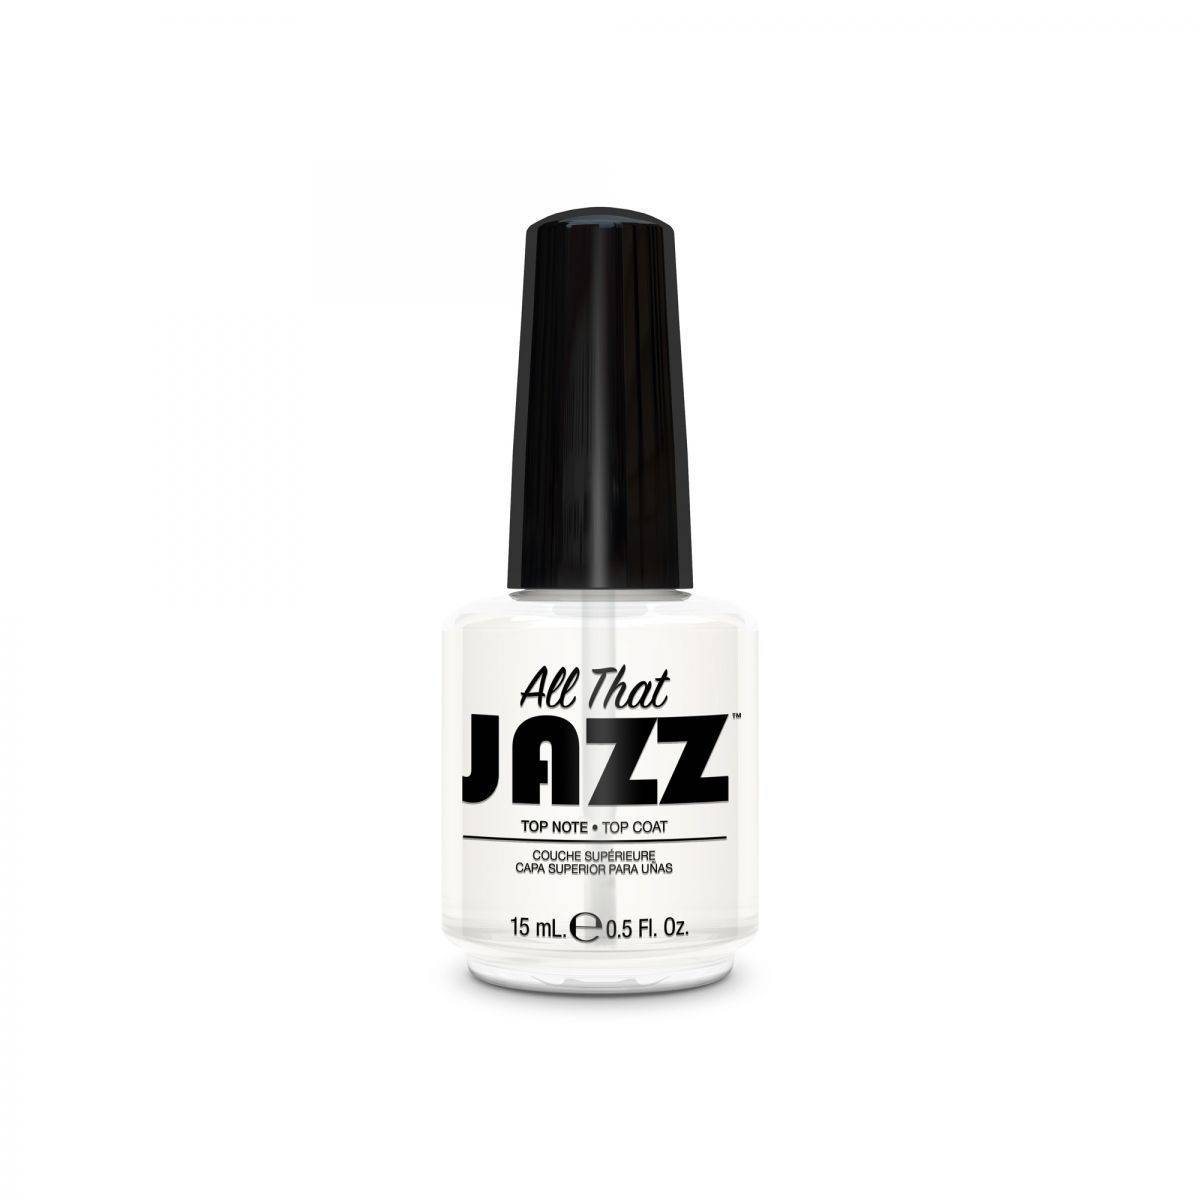 All That Jazz:Lacquer:Treatments:Top Note